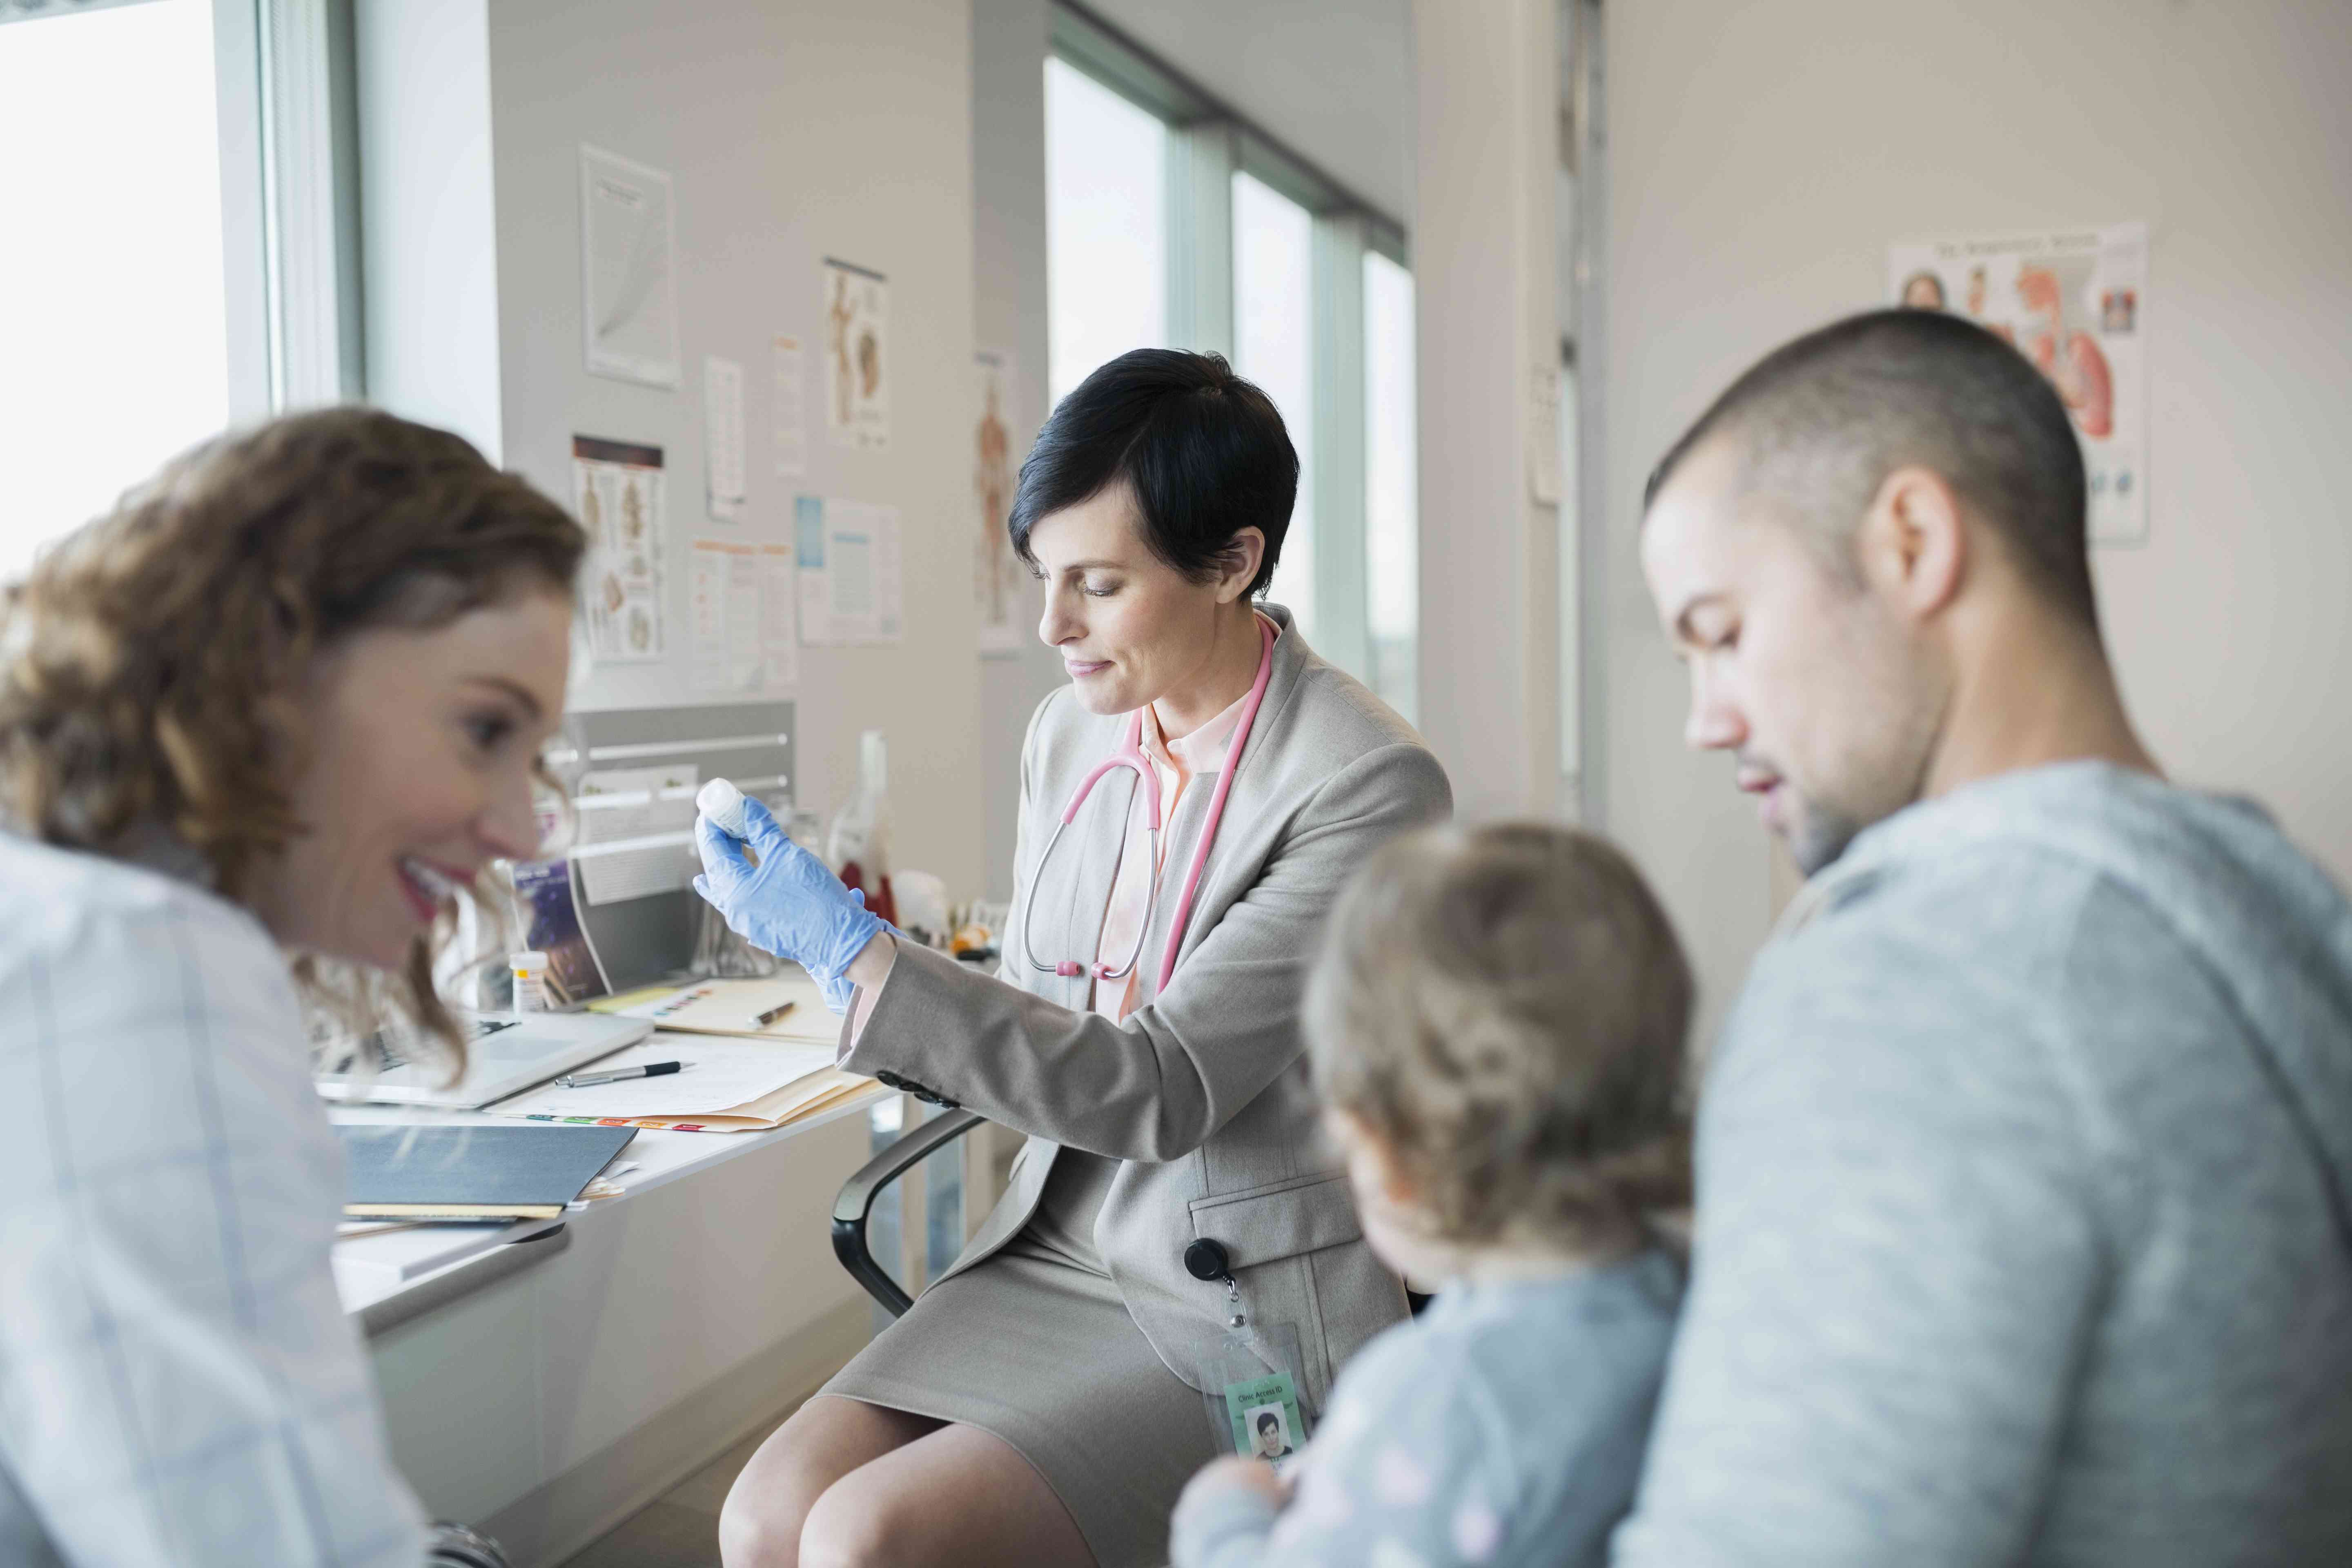 Parents holding baby girl while pediatrician prepares vaccination